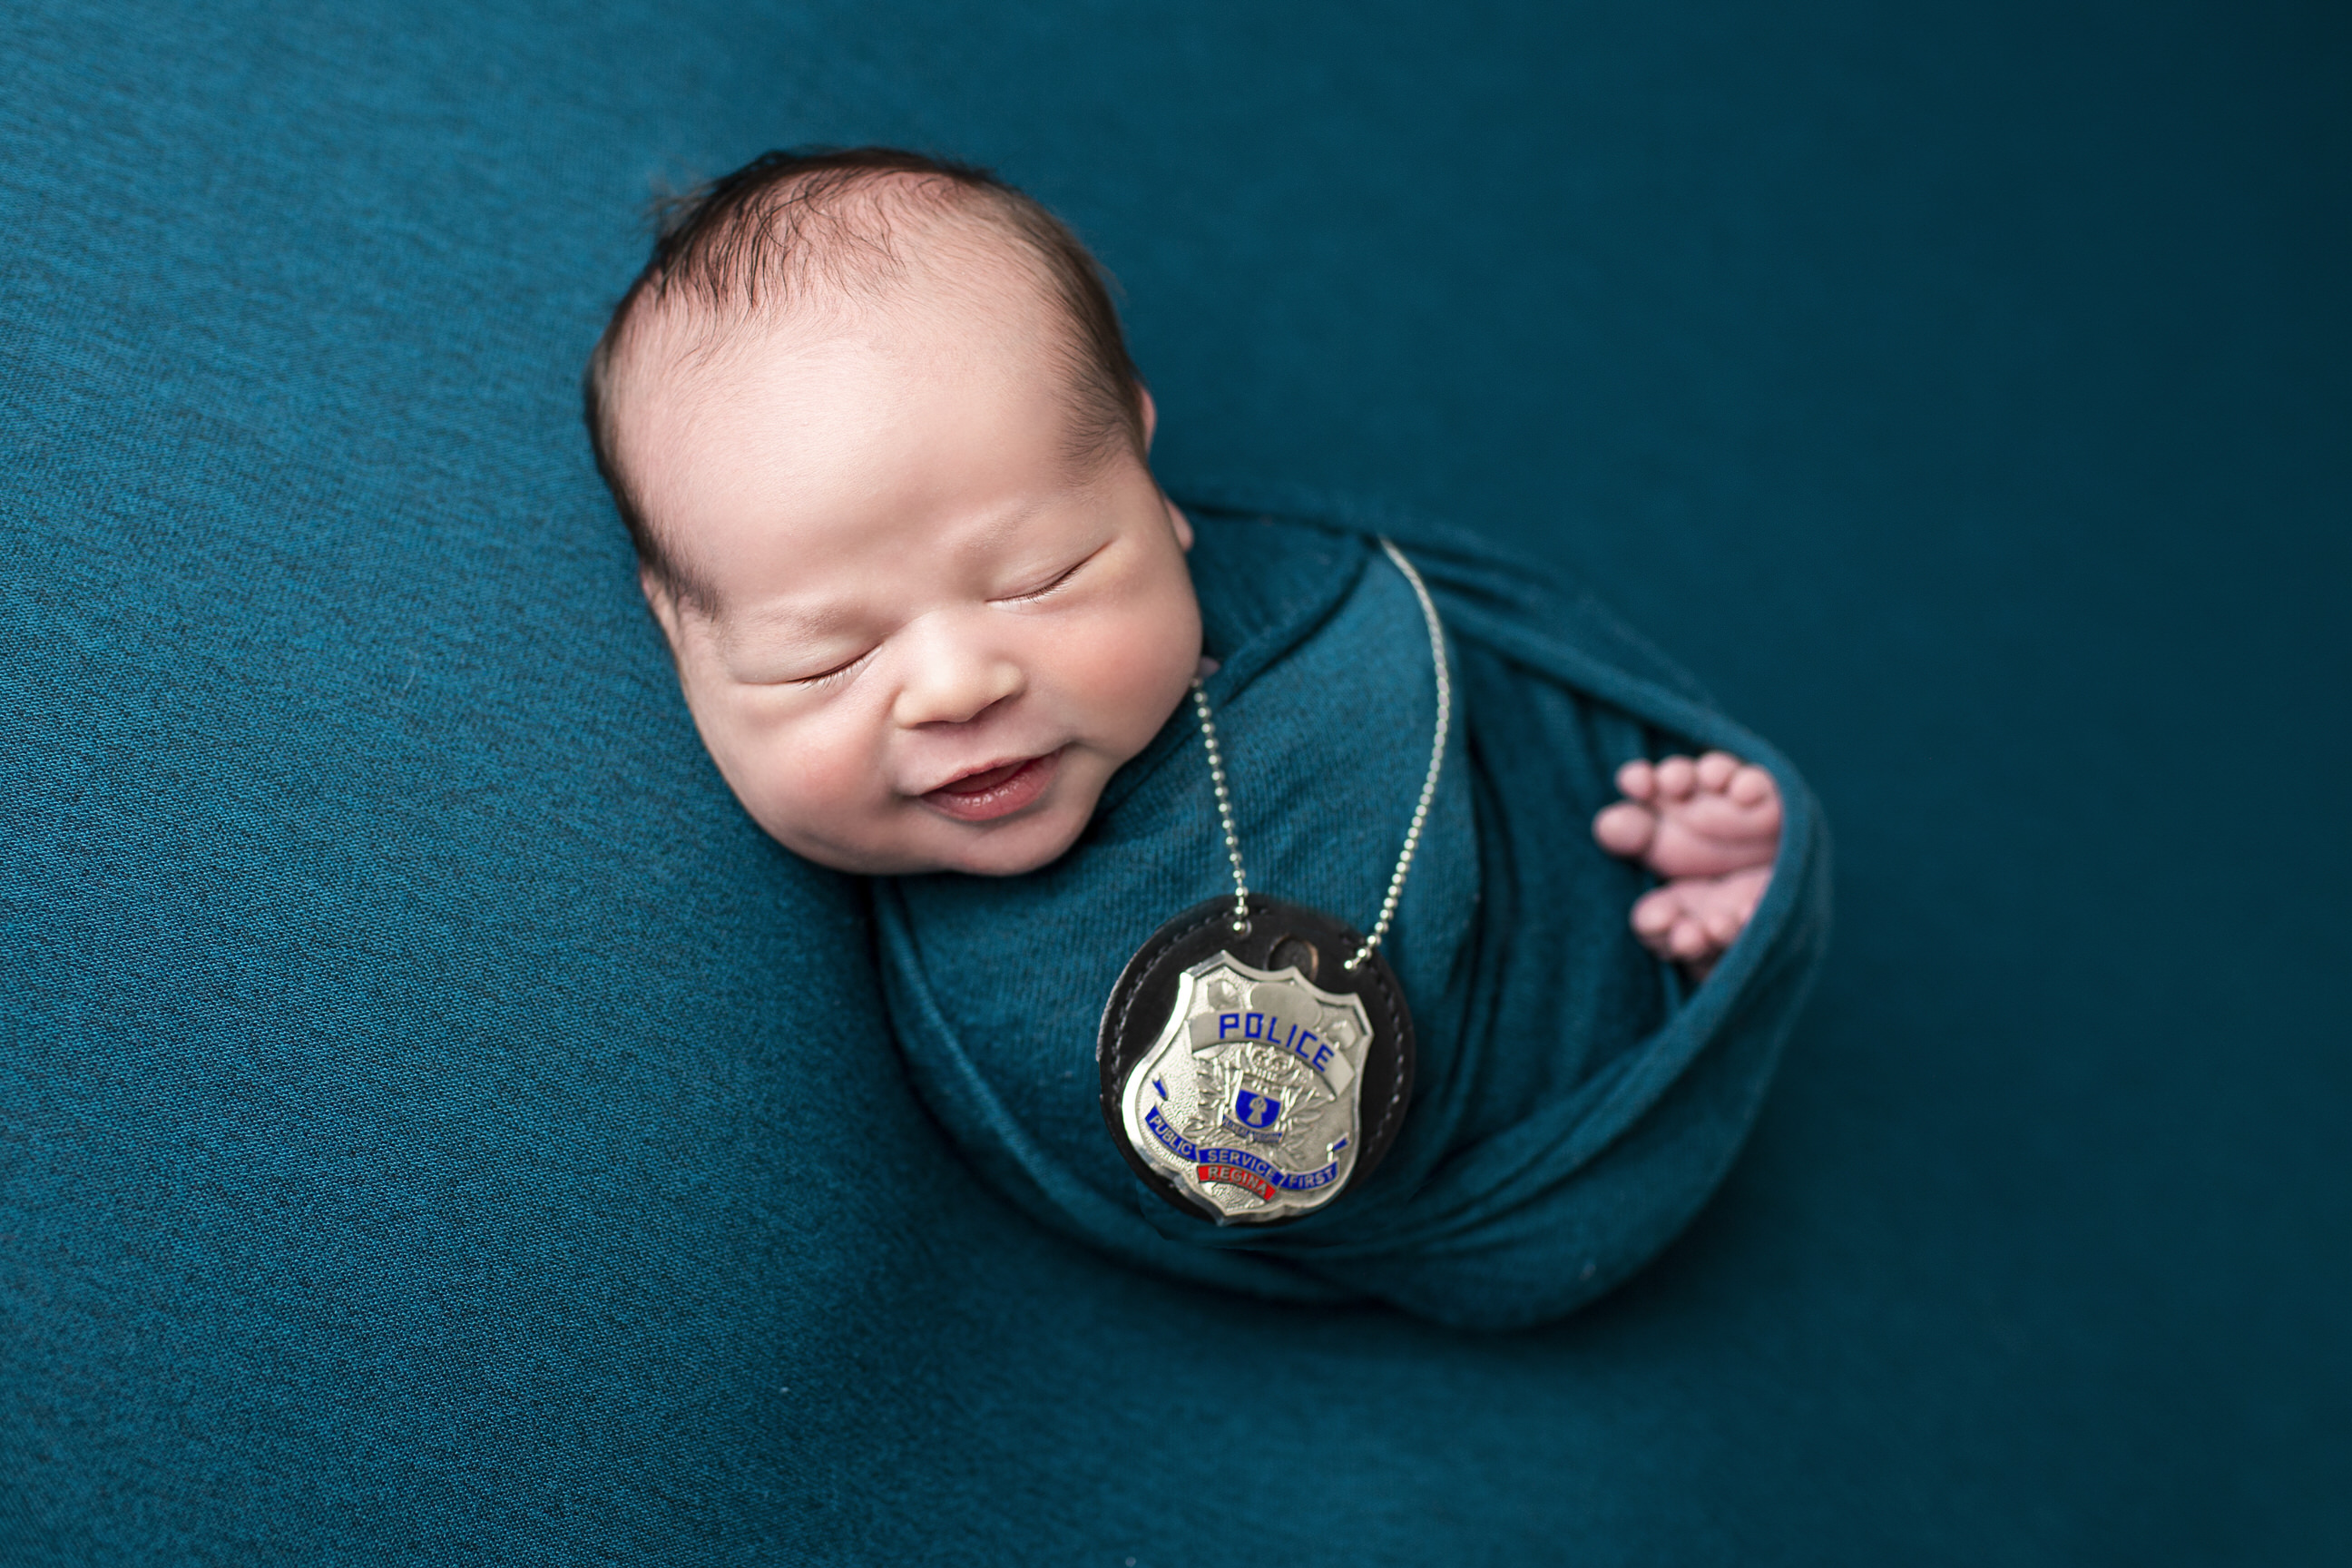 Newborn Photos regina police badge